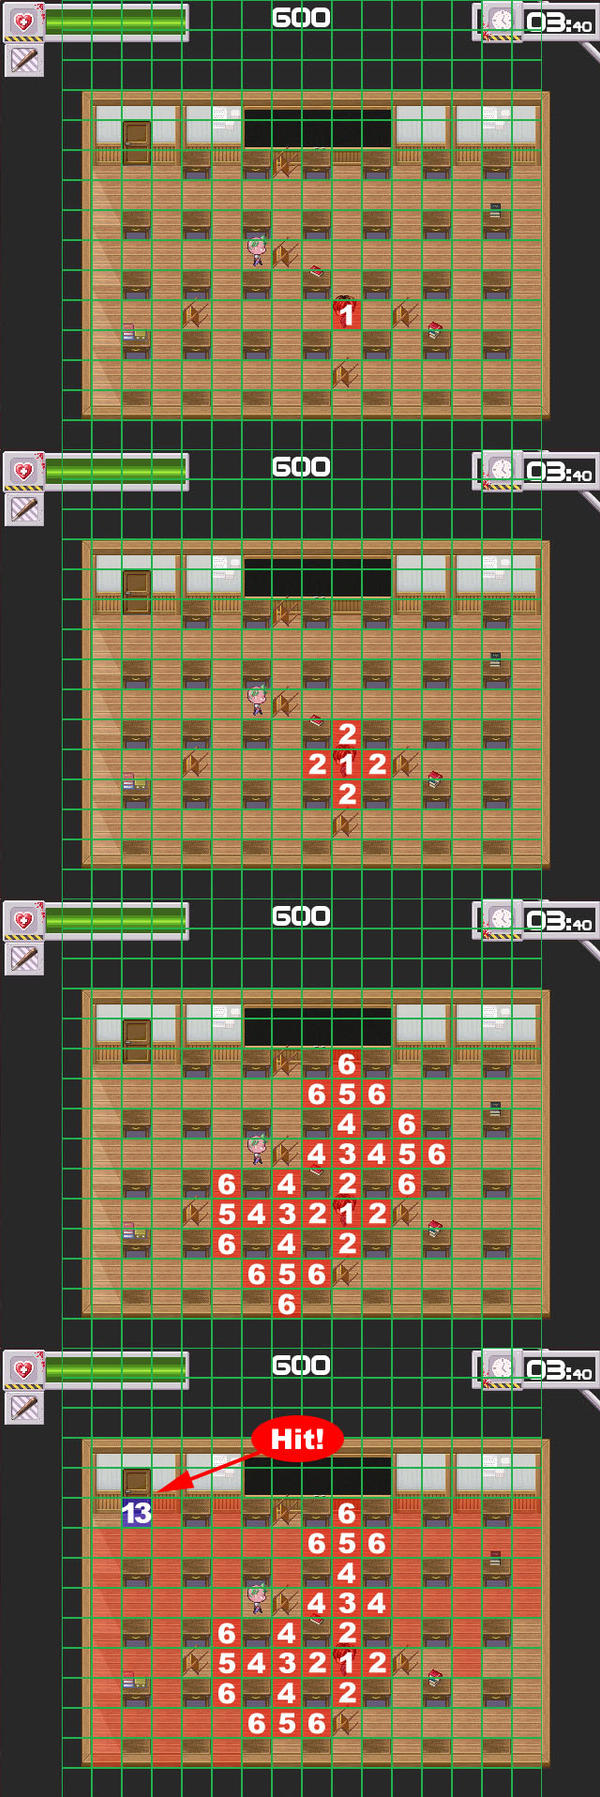 Path finding games online